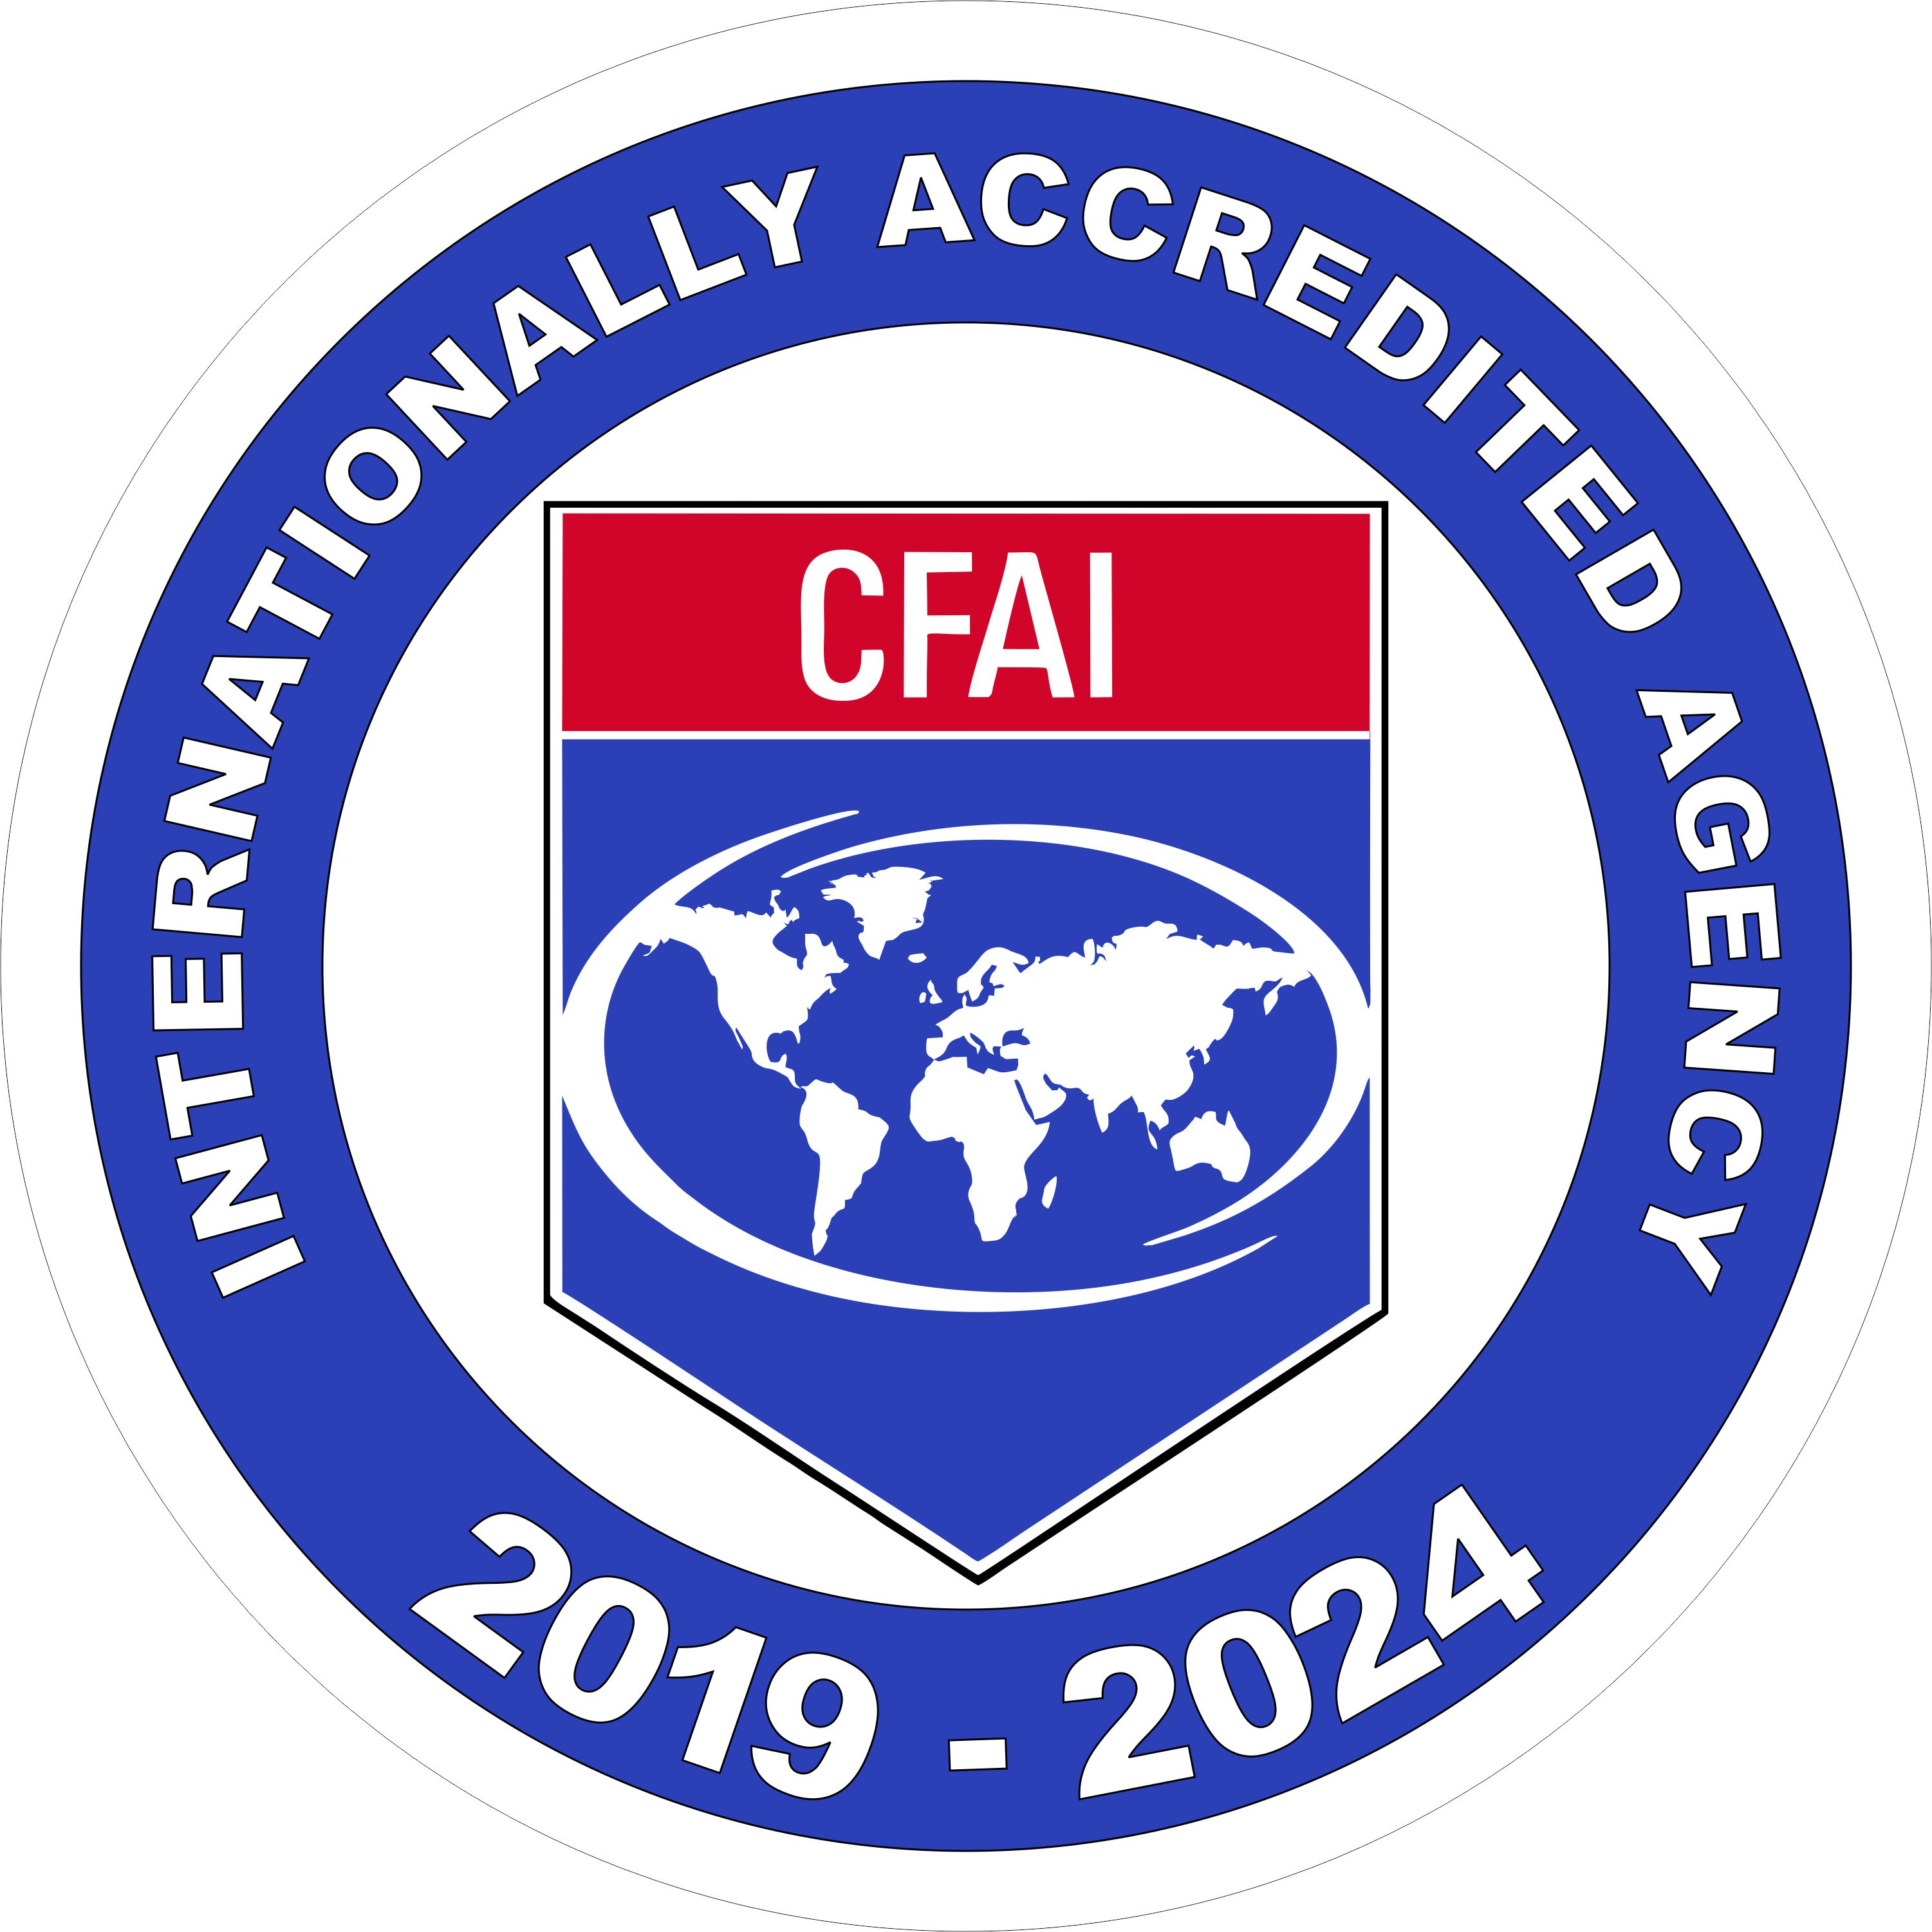 This is an image of the CFAI logo.